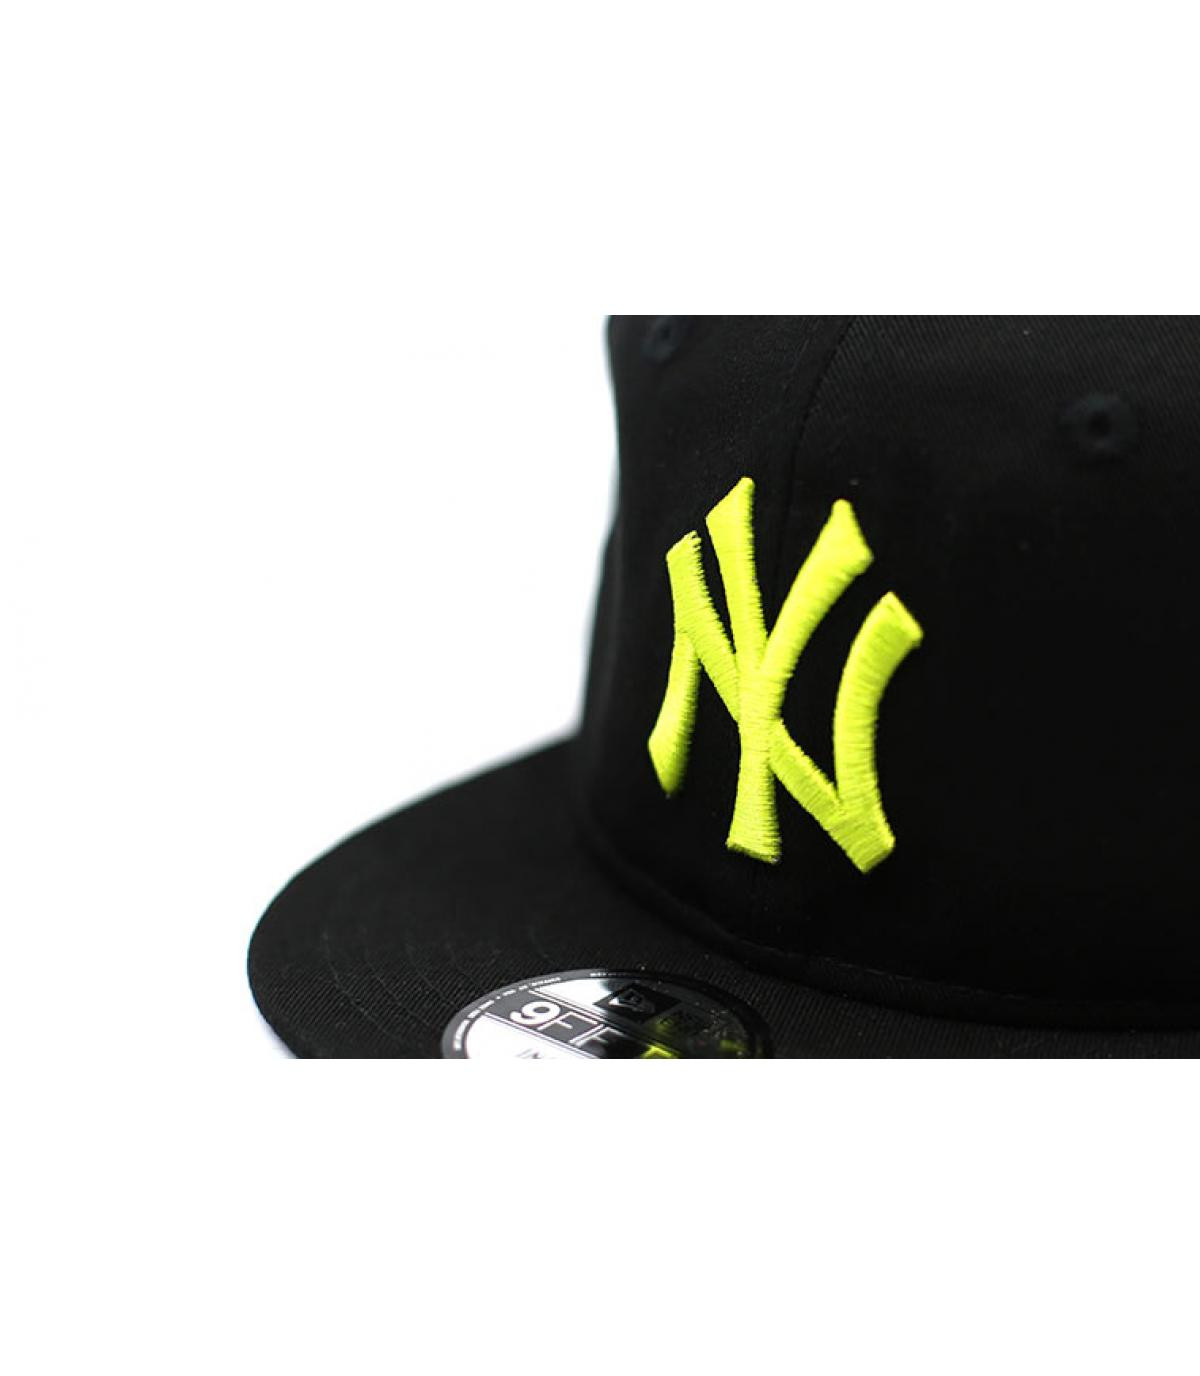 Détails Snapback Baby League Ess NY 9Fifty black cyber yellow - image 3